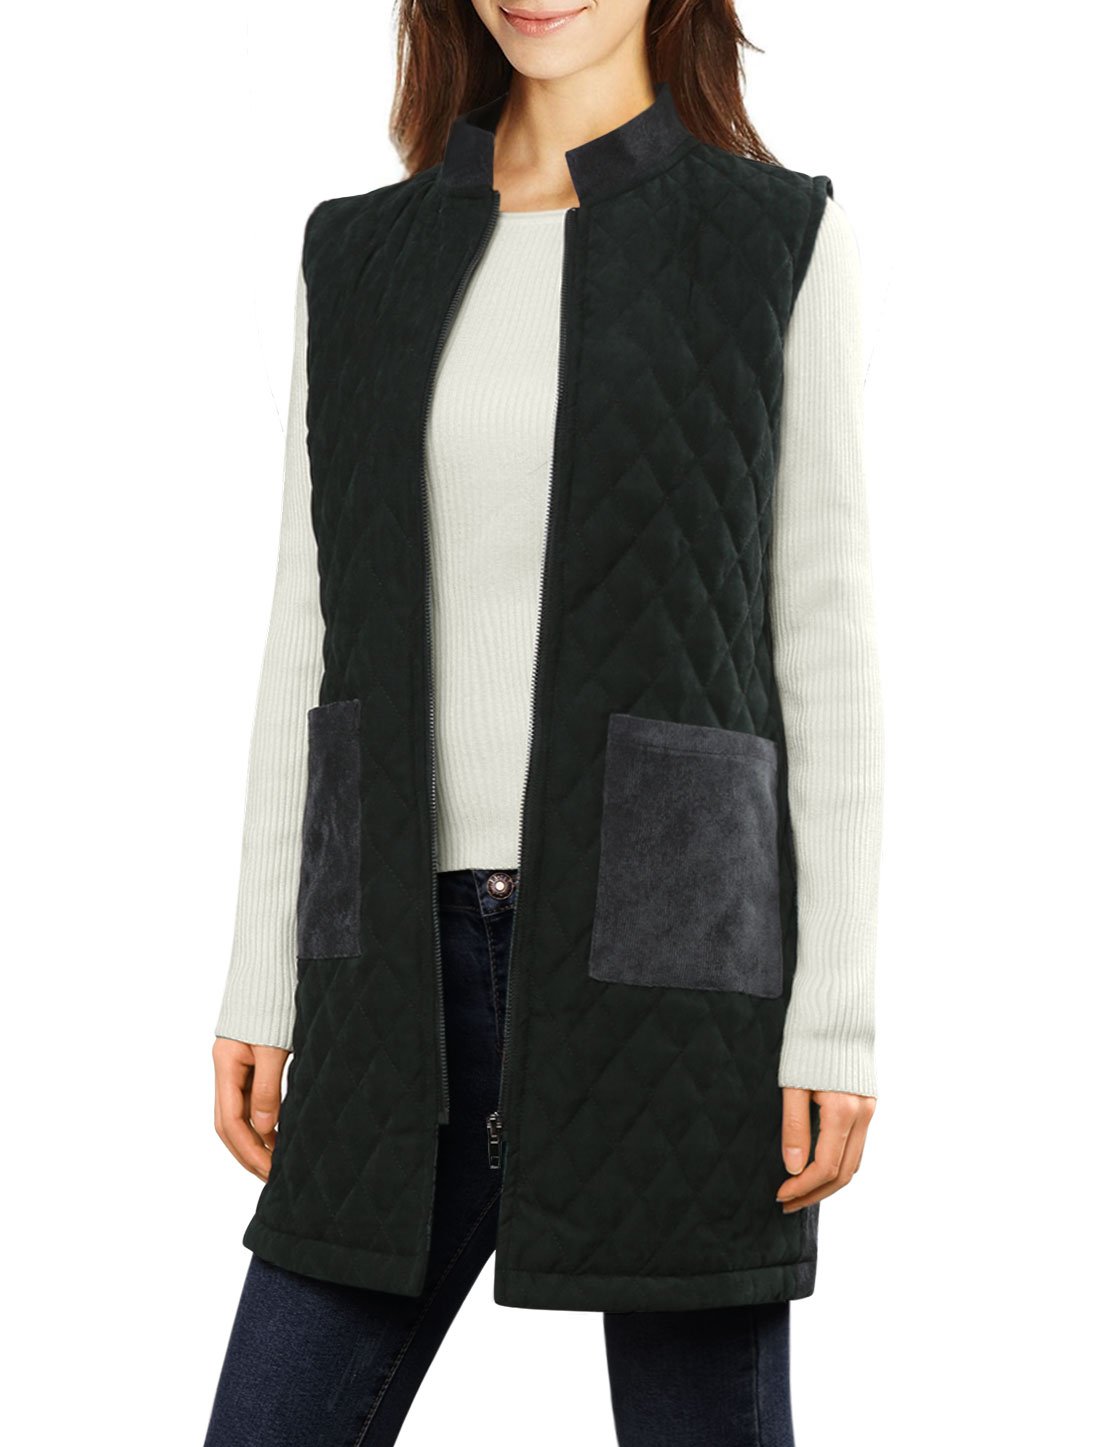 Woman Stand Collar Zip Up Corduroy Quilted Tunic Vest Charcoal Gray L